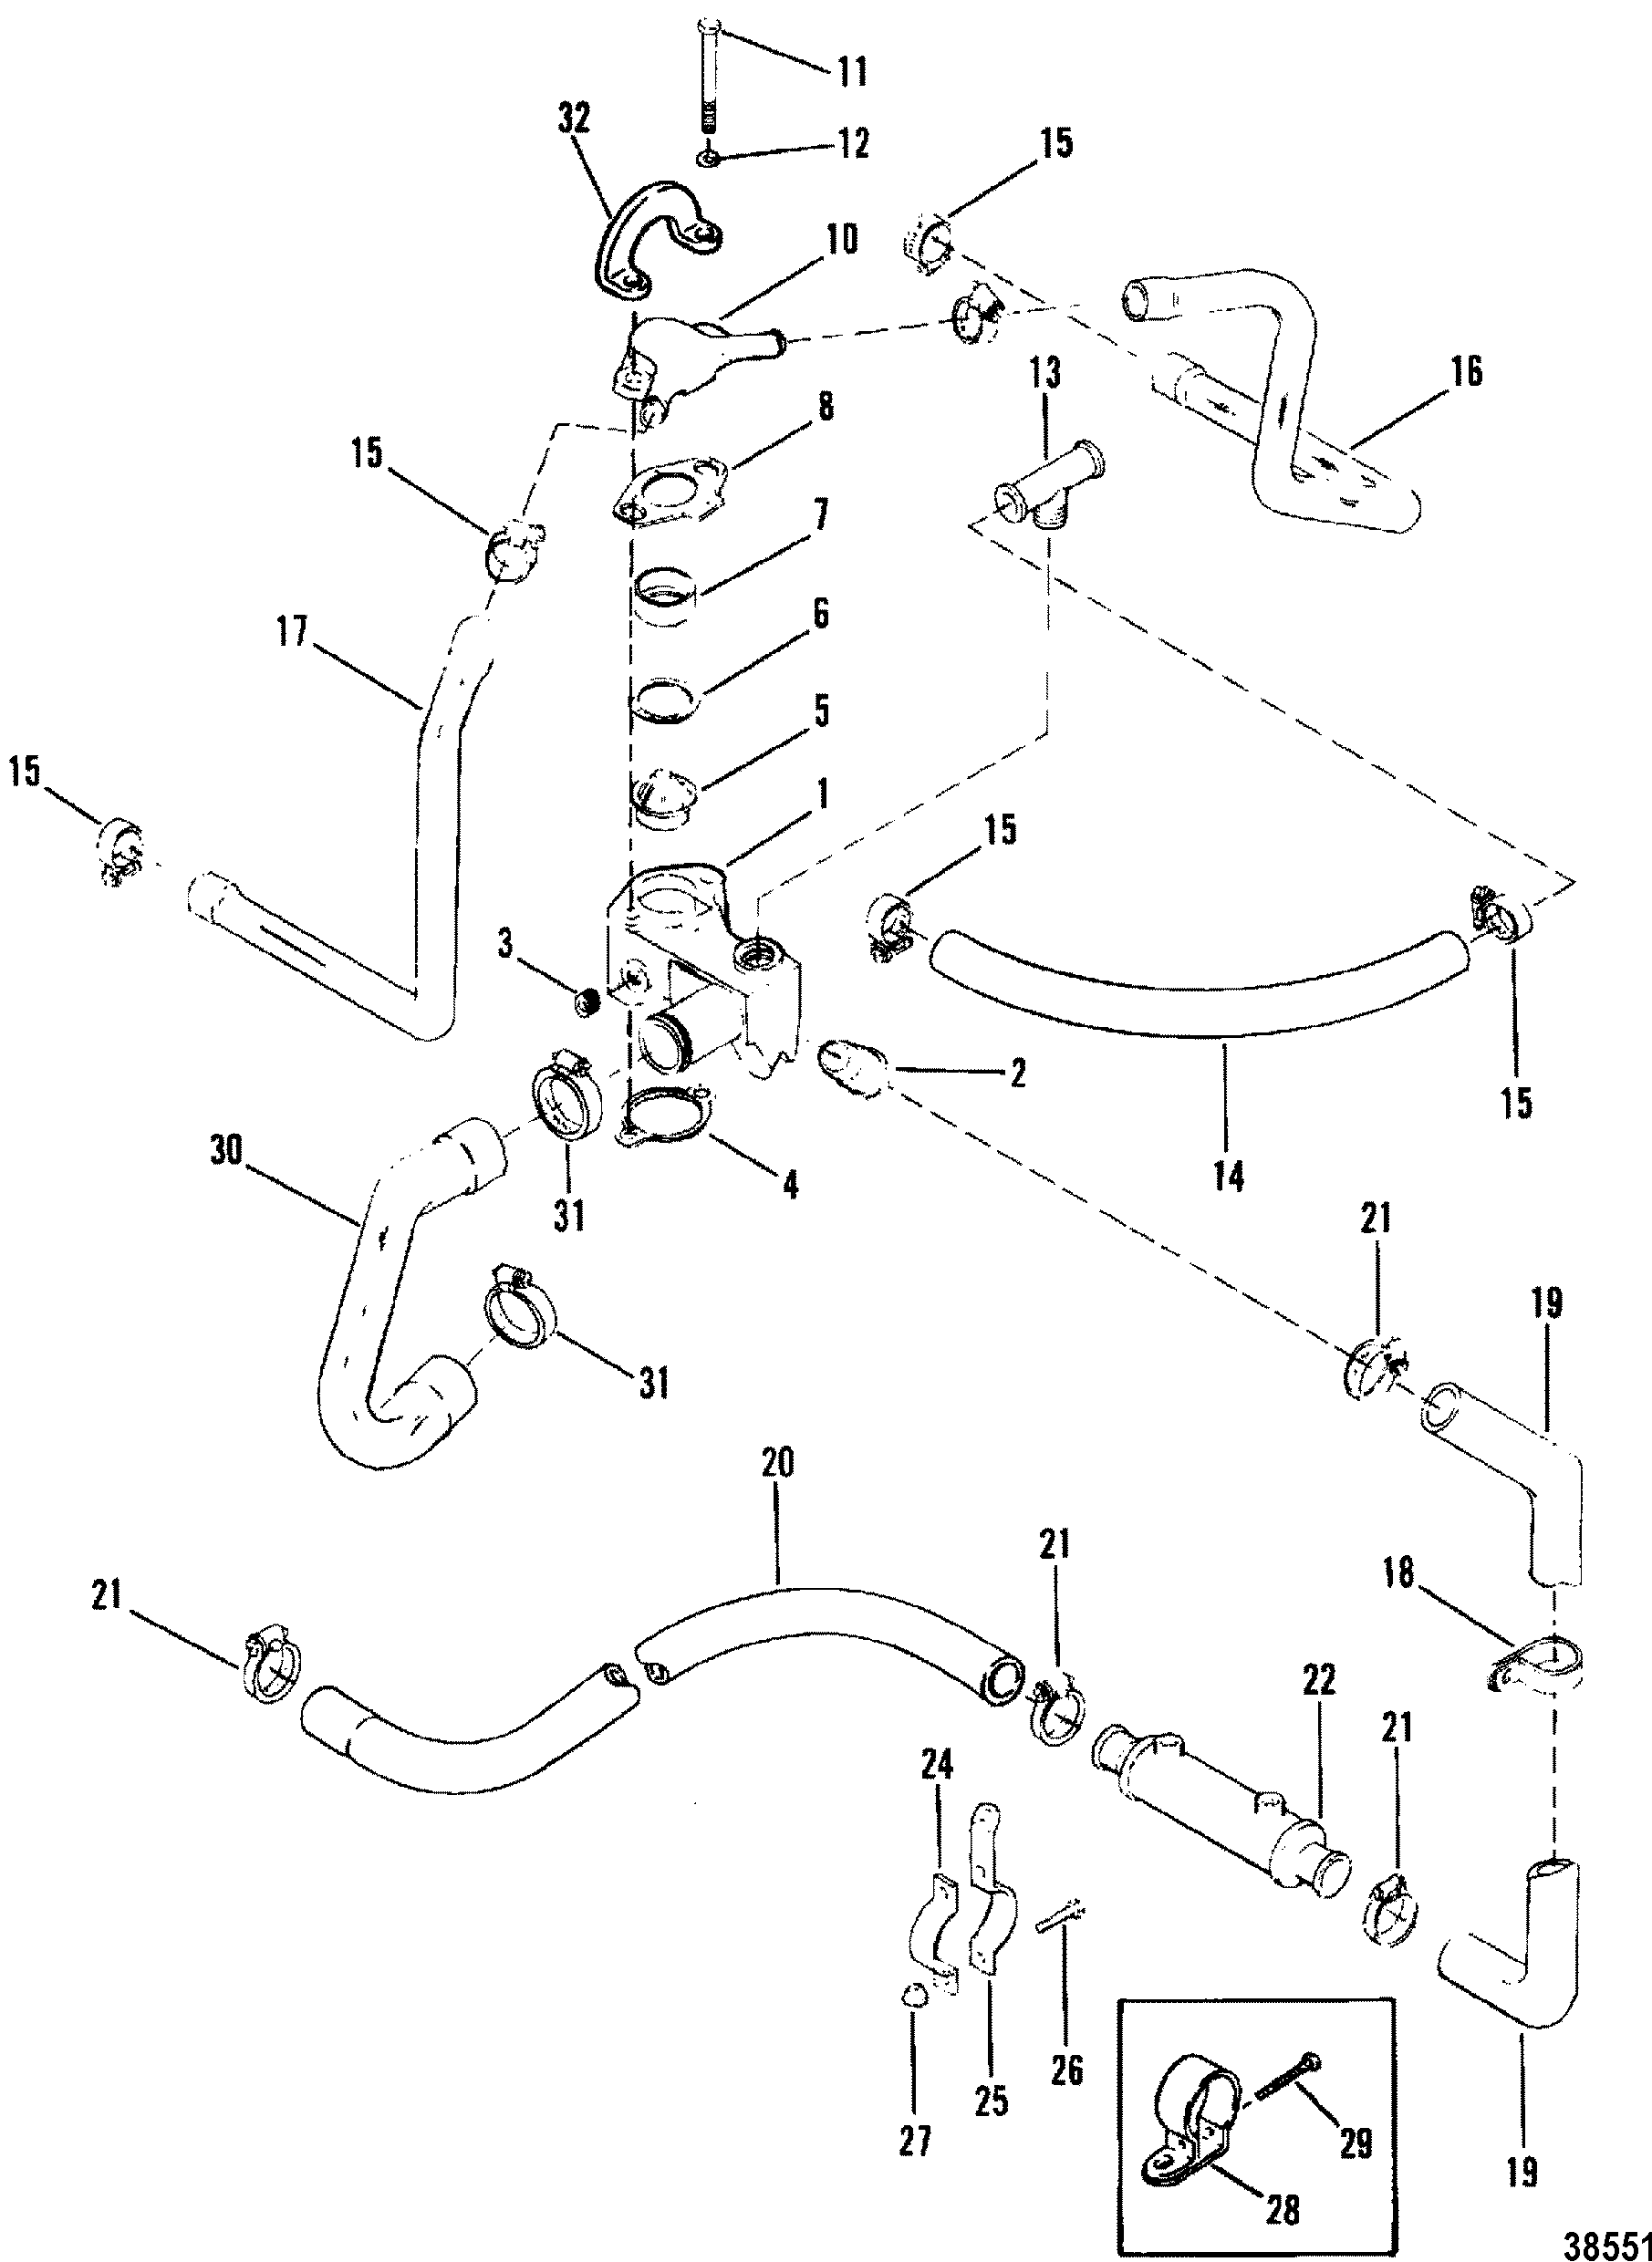 38551 ������� ��������� mercruiser ��������� 350 mag alpha gm 350 v 8 Mercruiser 5.0 MPI Diagram at soozxer.org